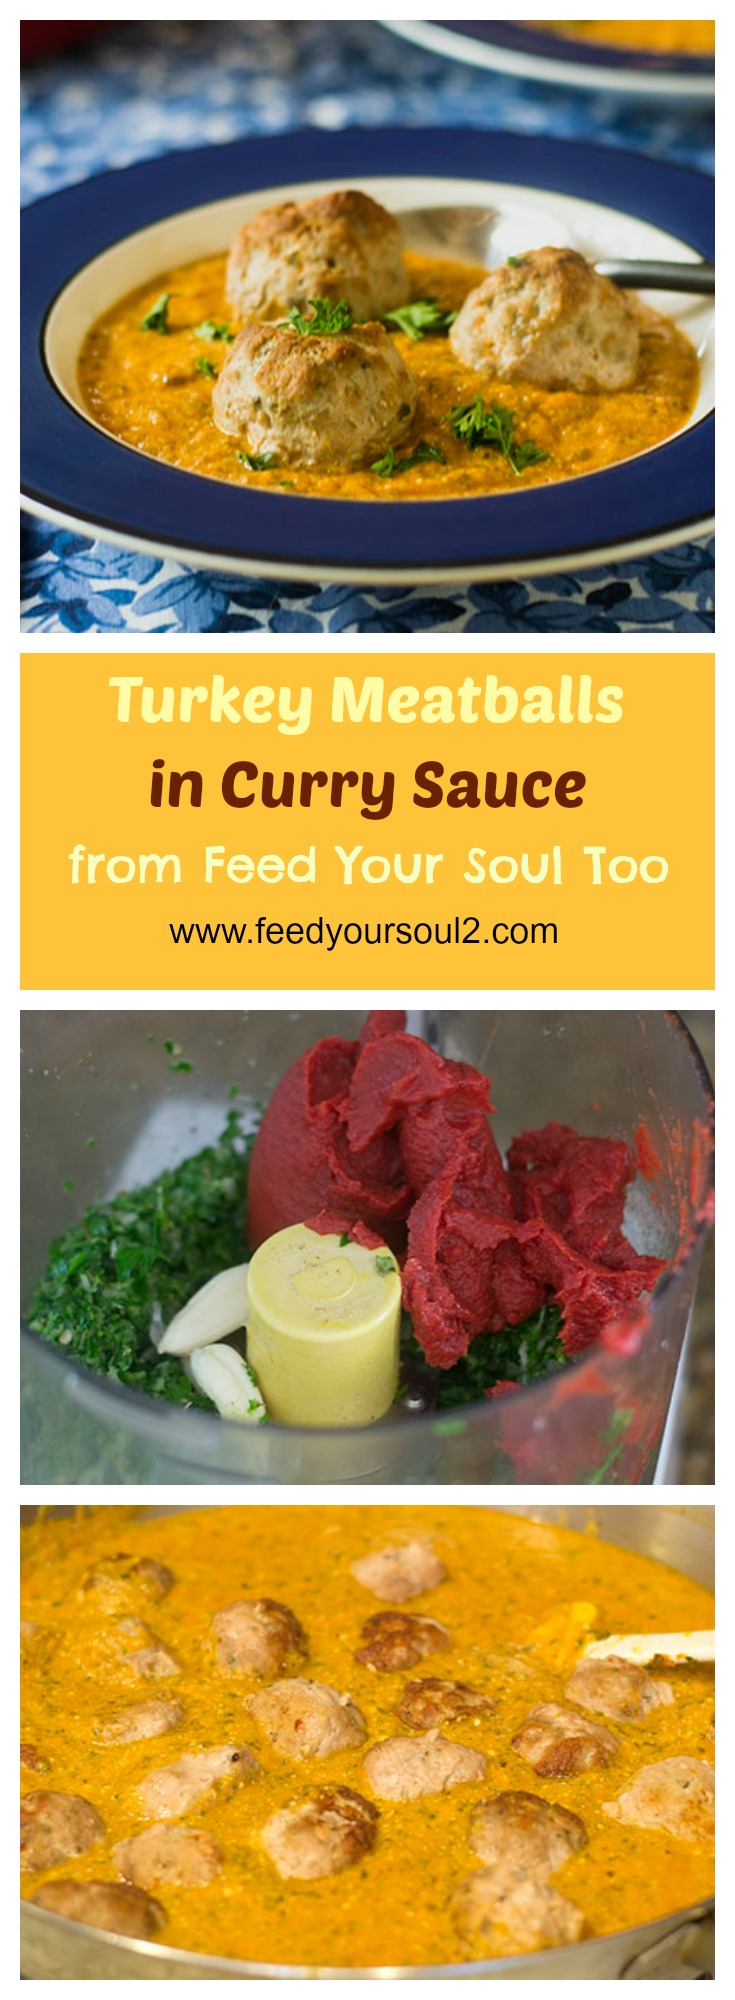 Turkey Meatballs in Curry Sauce #groundturkey #Indianfood #curry | feedyoursoul2.com